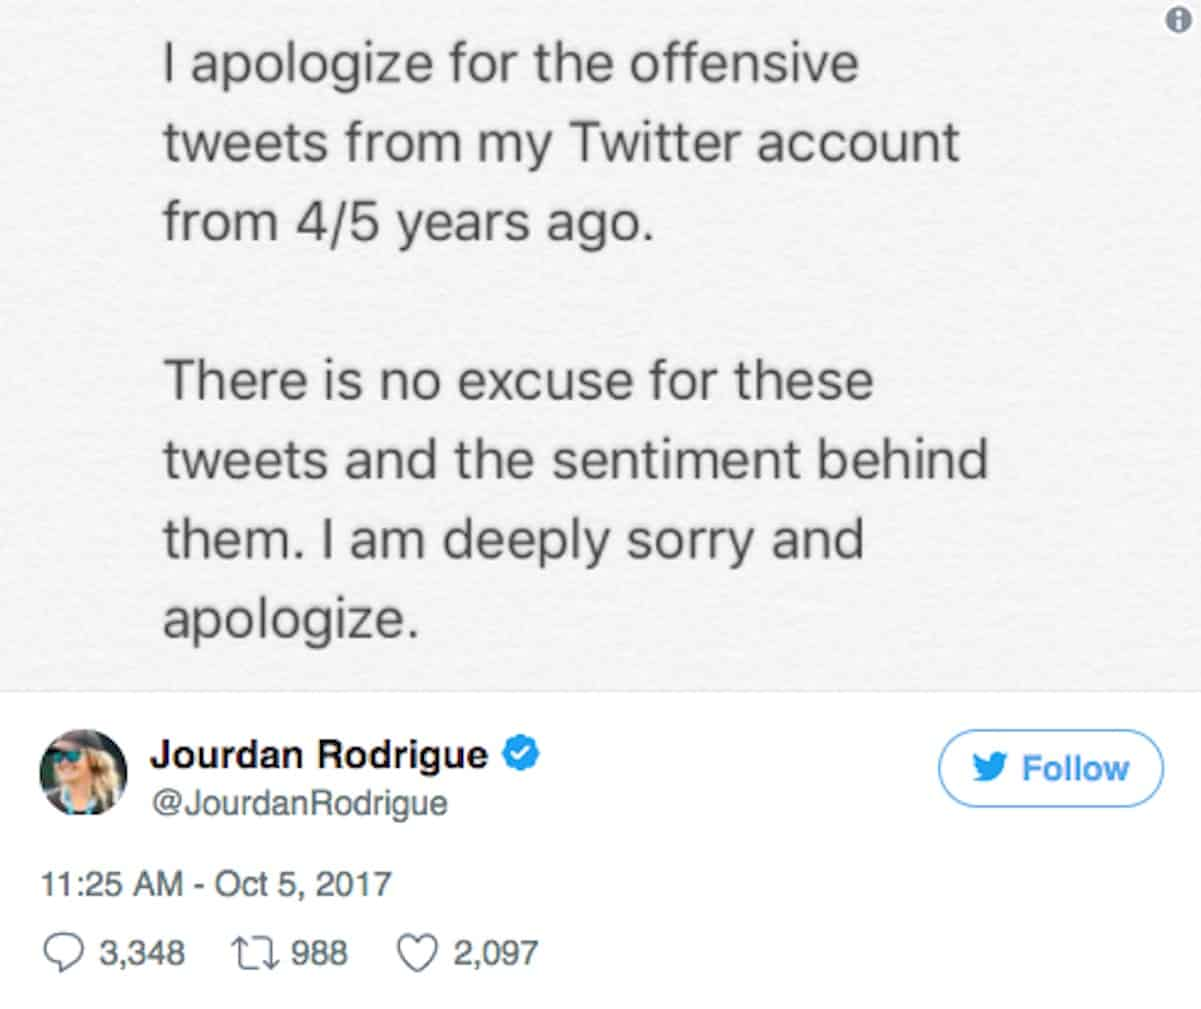 a report on the apology of home depot after a racist tweet Home depot dedicates twitter feed to apologies and terminates social media agency after racist tweet there was an almost immediate backlash from the home depot's 160,000+ twitter followers, especially from african-americans.